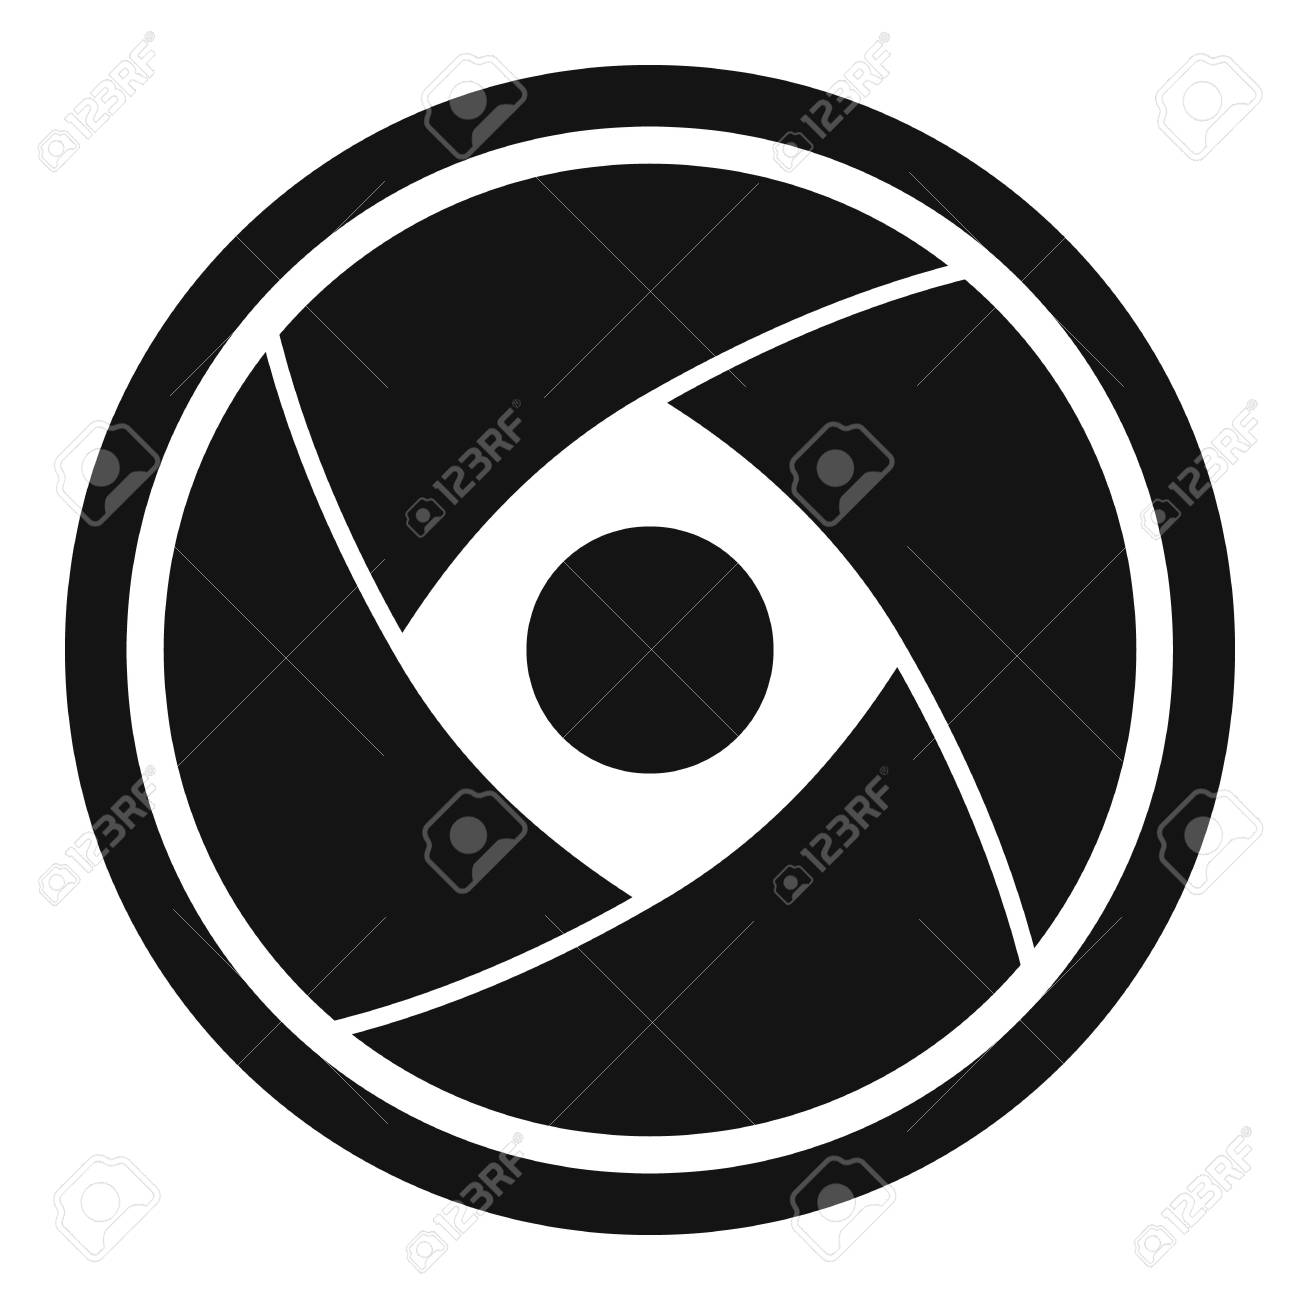 camera lens icon simple illustration of camera lens vector icon rh 123rf com camera lens vector black and white camera lens vector psd